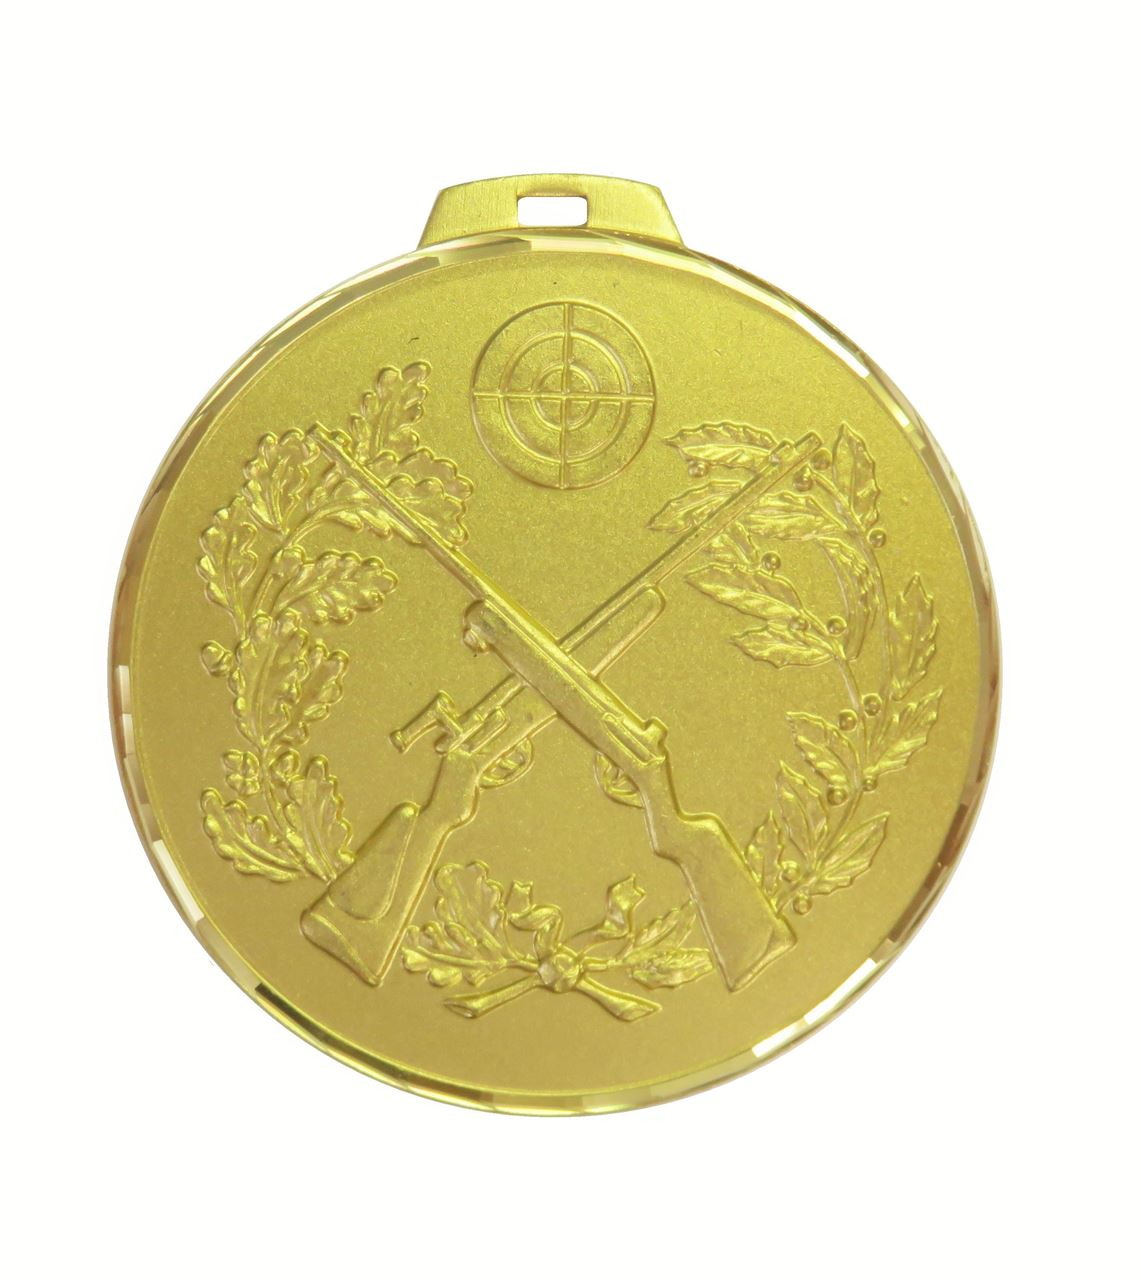 Gold Faceted Cross Rifles Medal (size: 70mm) - 394F/70G